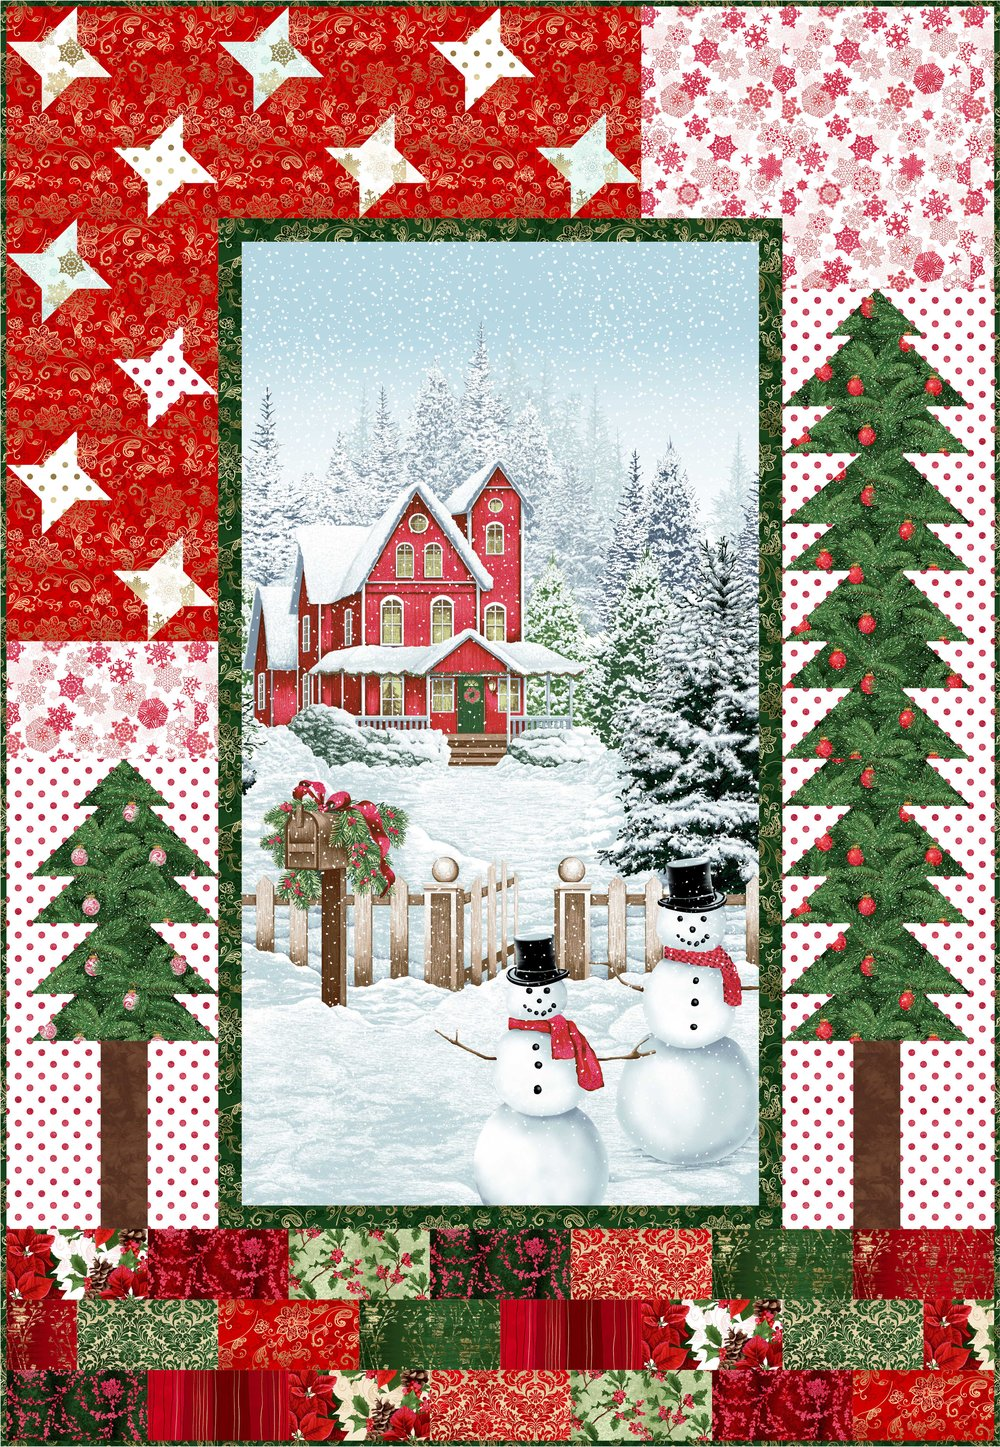 """Merry Little Christmas"" Free Christmas Quilt Pattern designed by Jennifer Fulton from The Inquiring Quilter brought to you by RJR Fabrics"